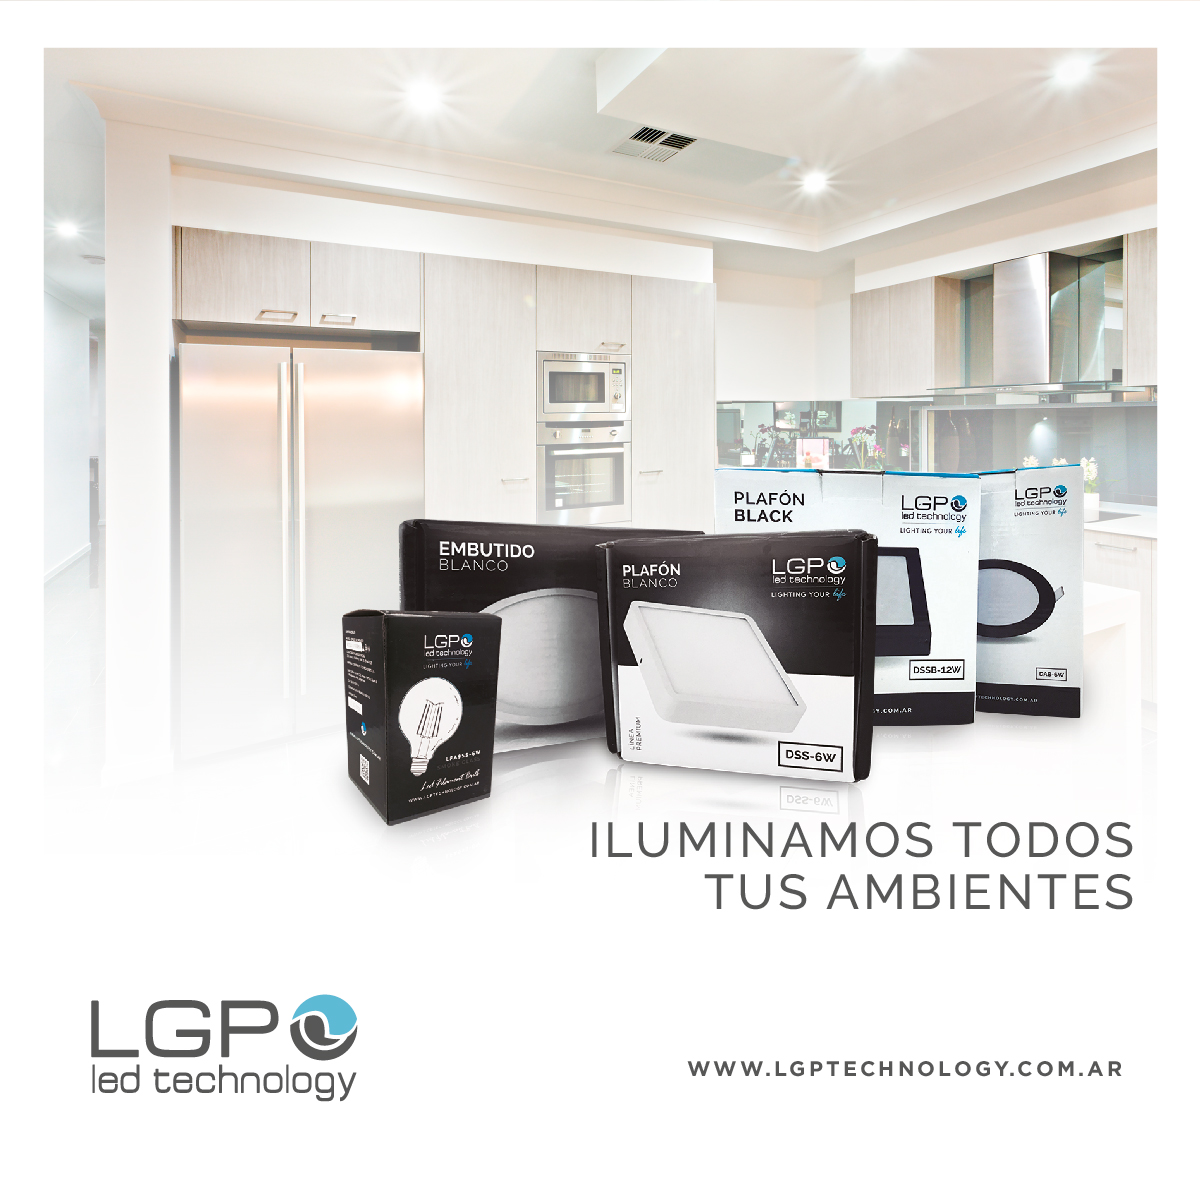 LGP. Led Technology, una empresa destacada por sus productos LED